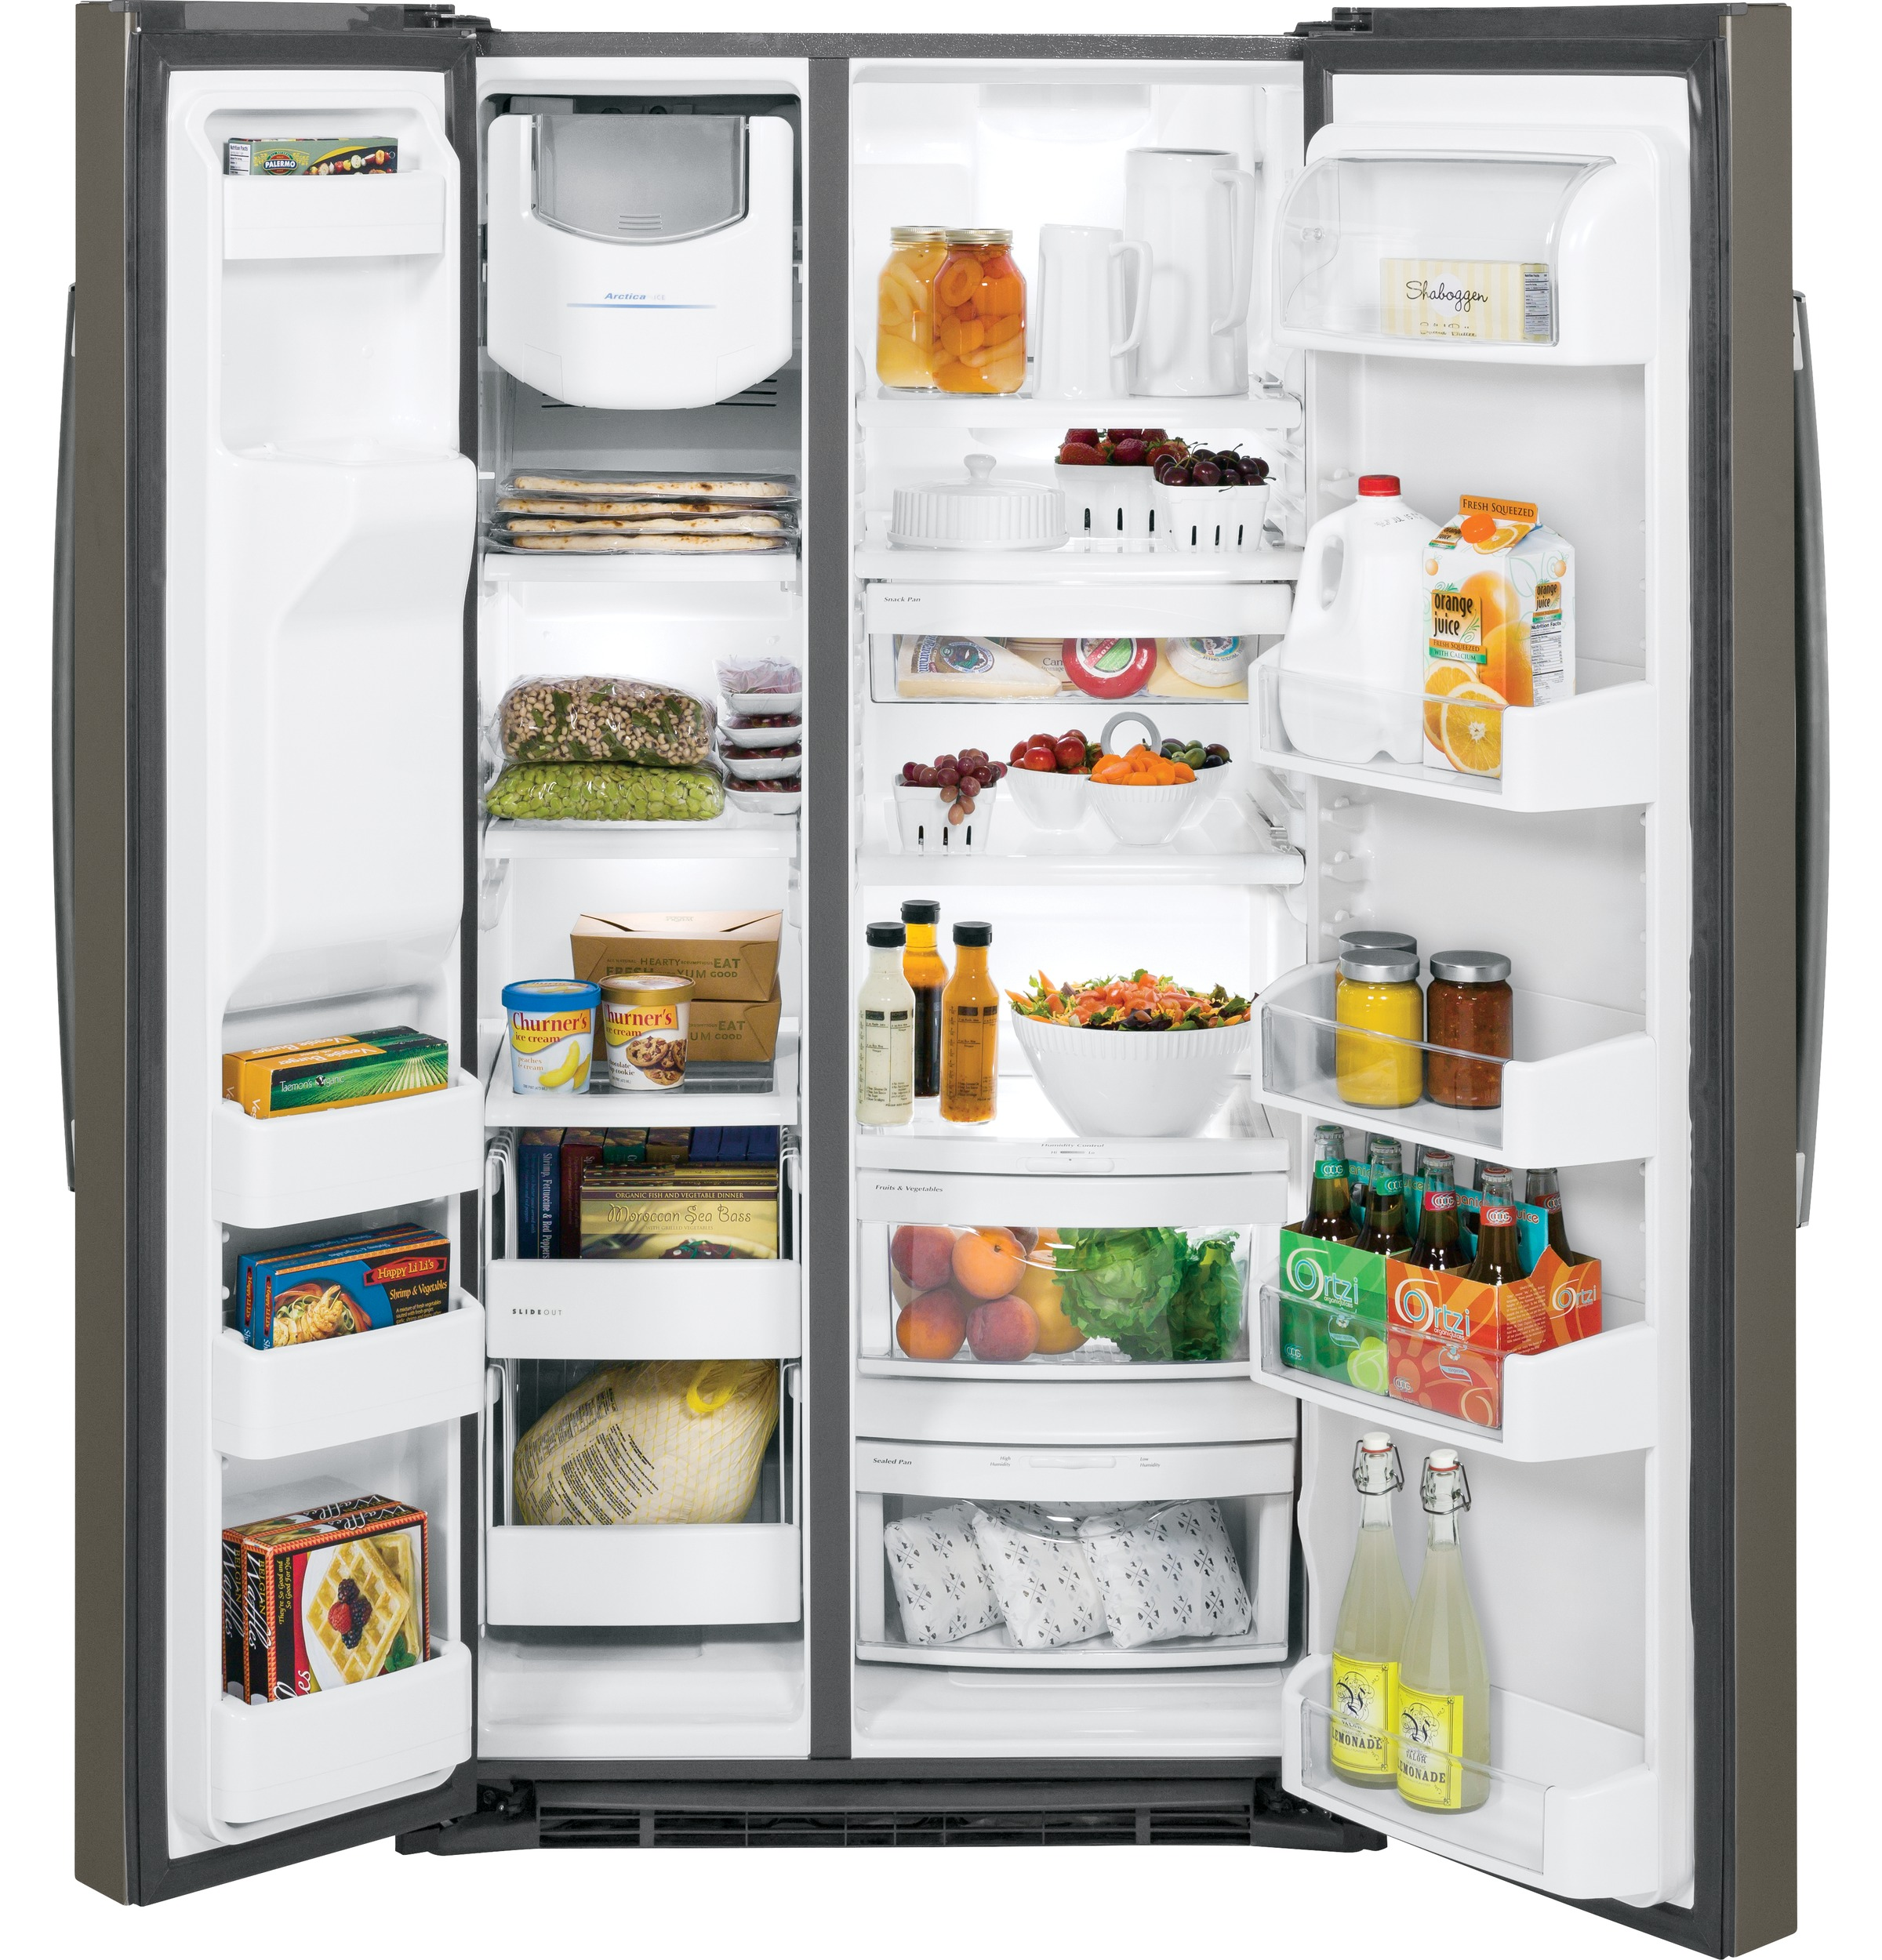 Model: GSE25HMHES | GE® ENERGY STAR® 25.3 Cu. Ft. Side-By-Side Refrigerator